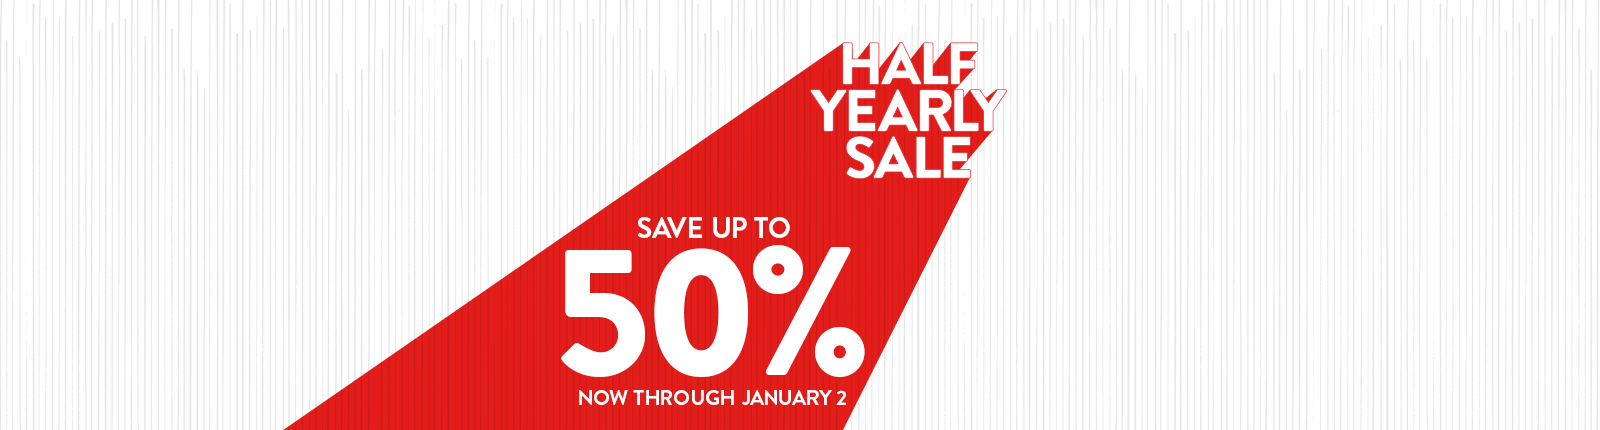 Half Yearly Save Up To 50 Through January 2